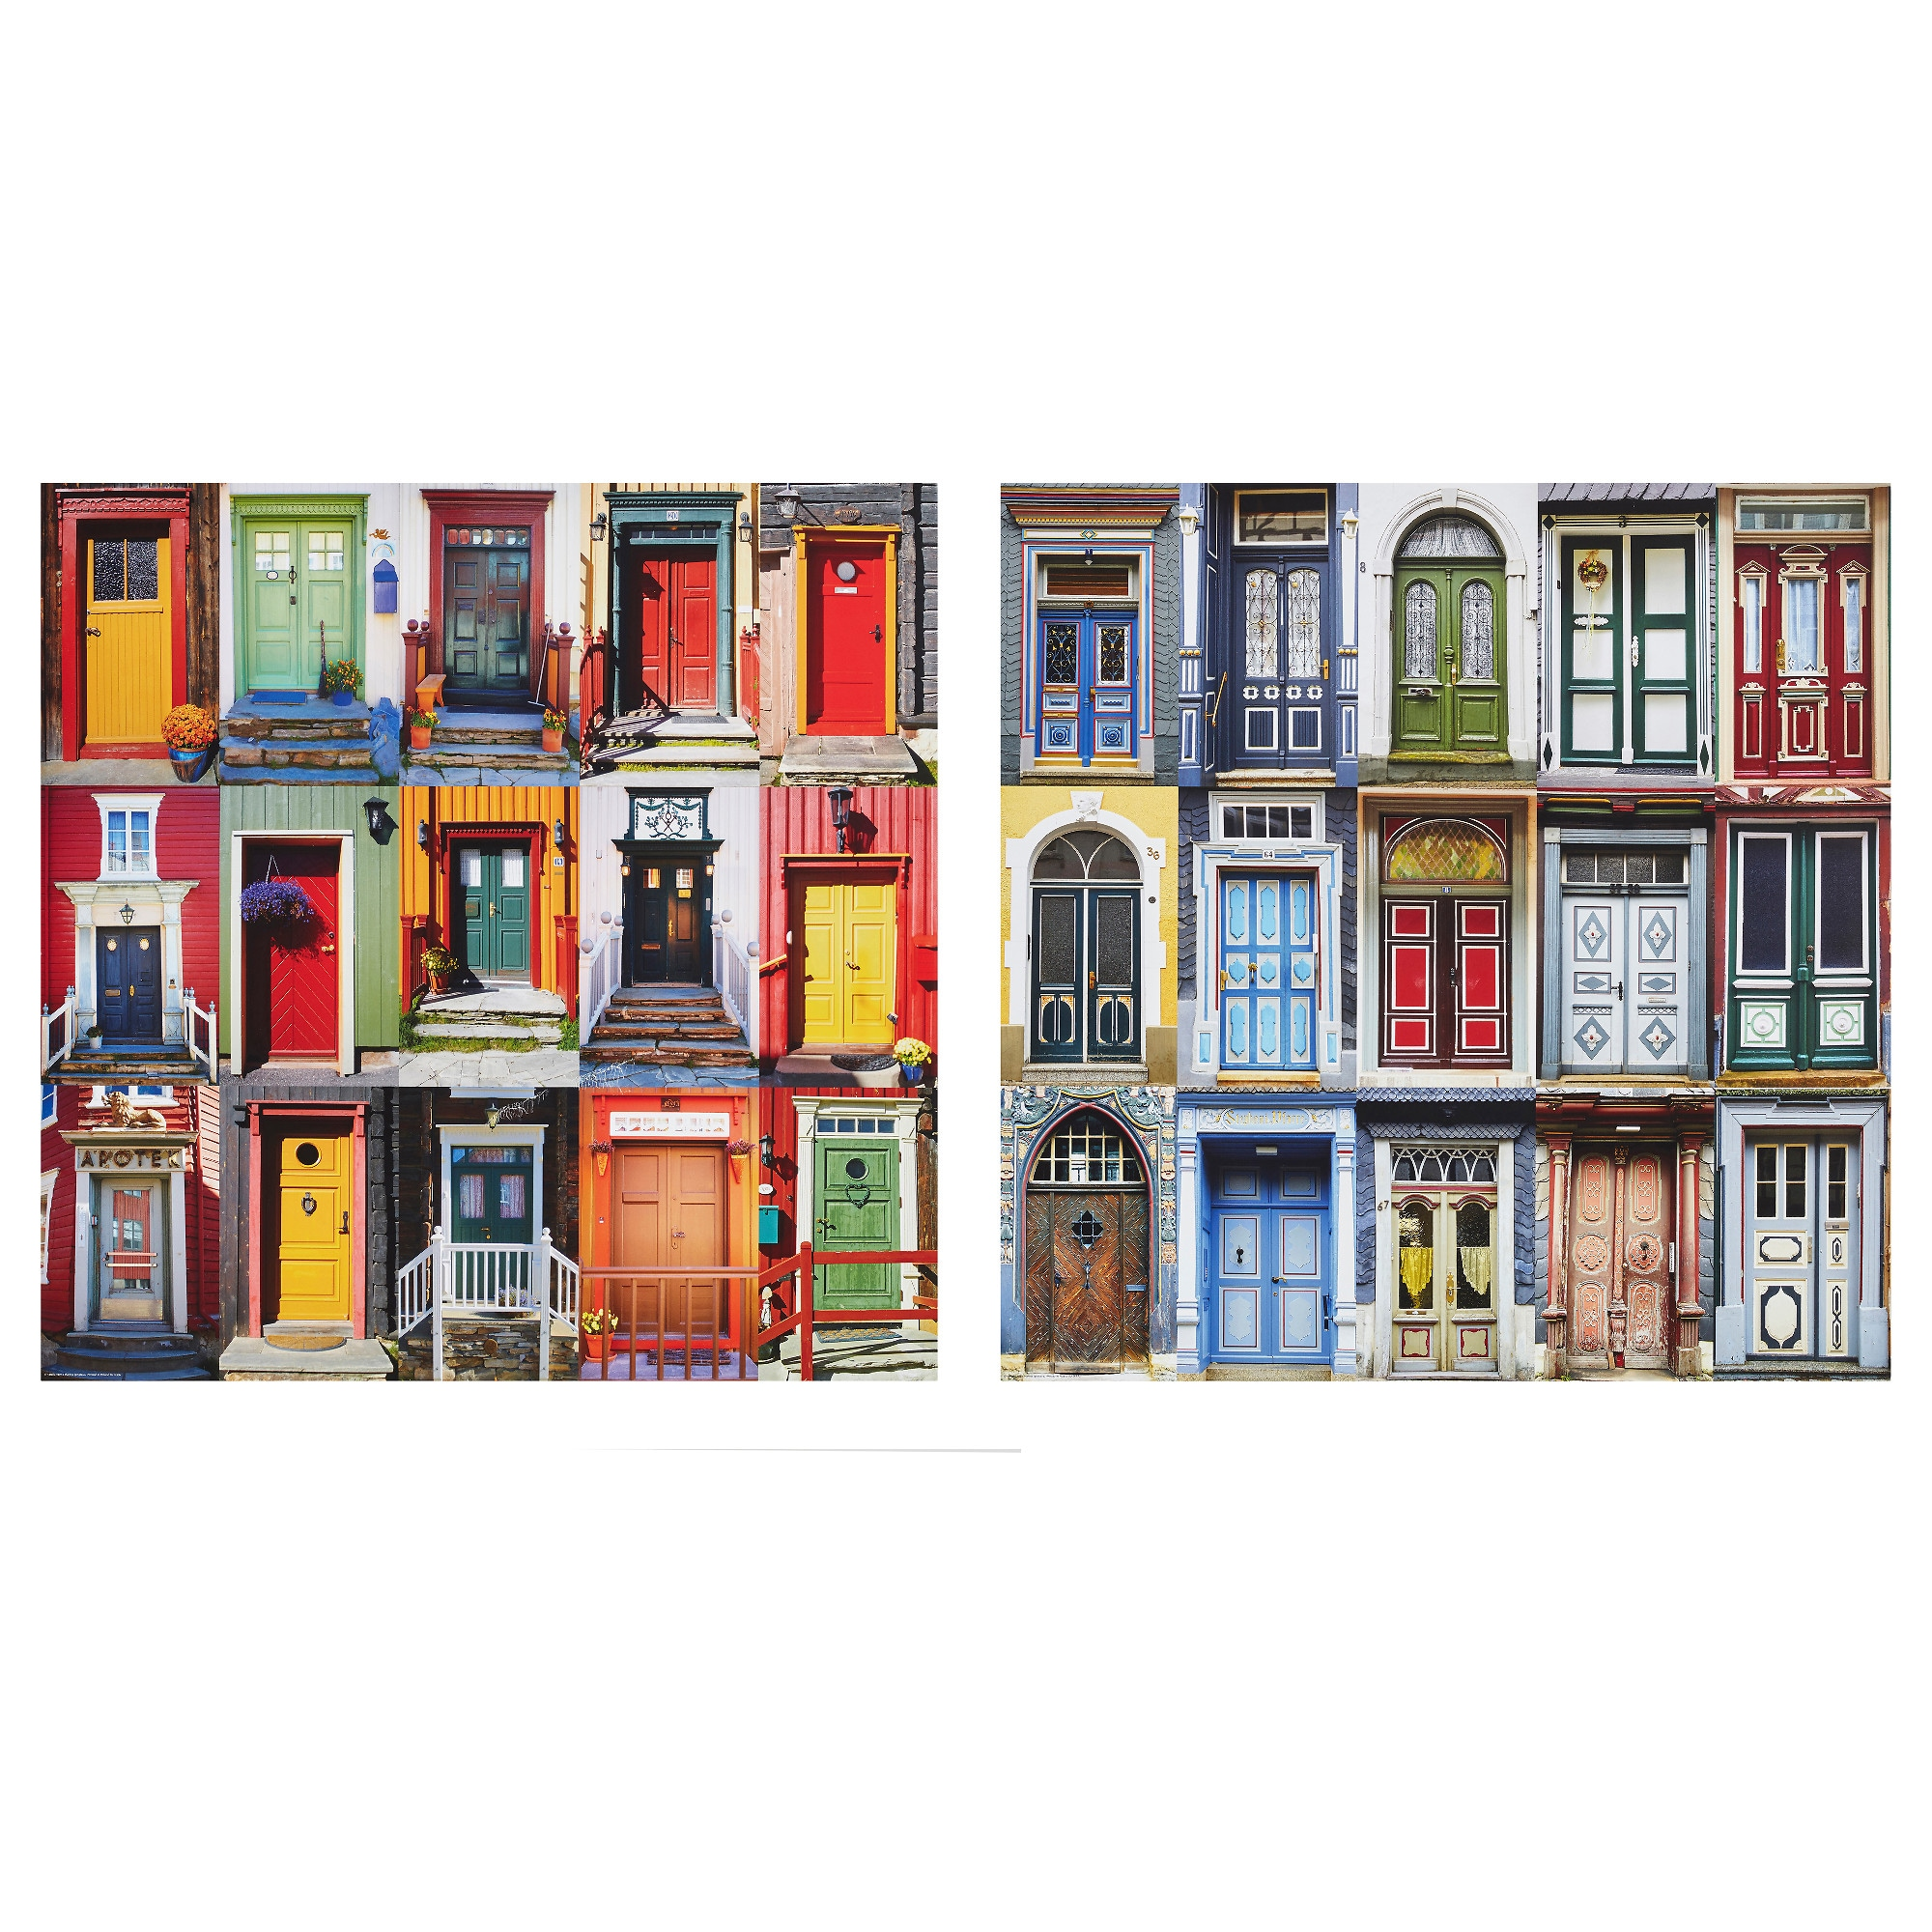 Posters wall art ikea edelvik poster set of 2 windows and doors 1 width 19 amipublicfo Images